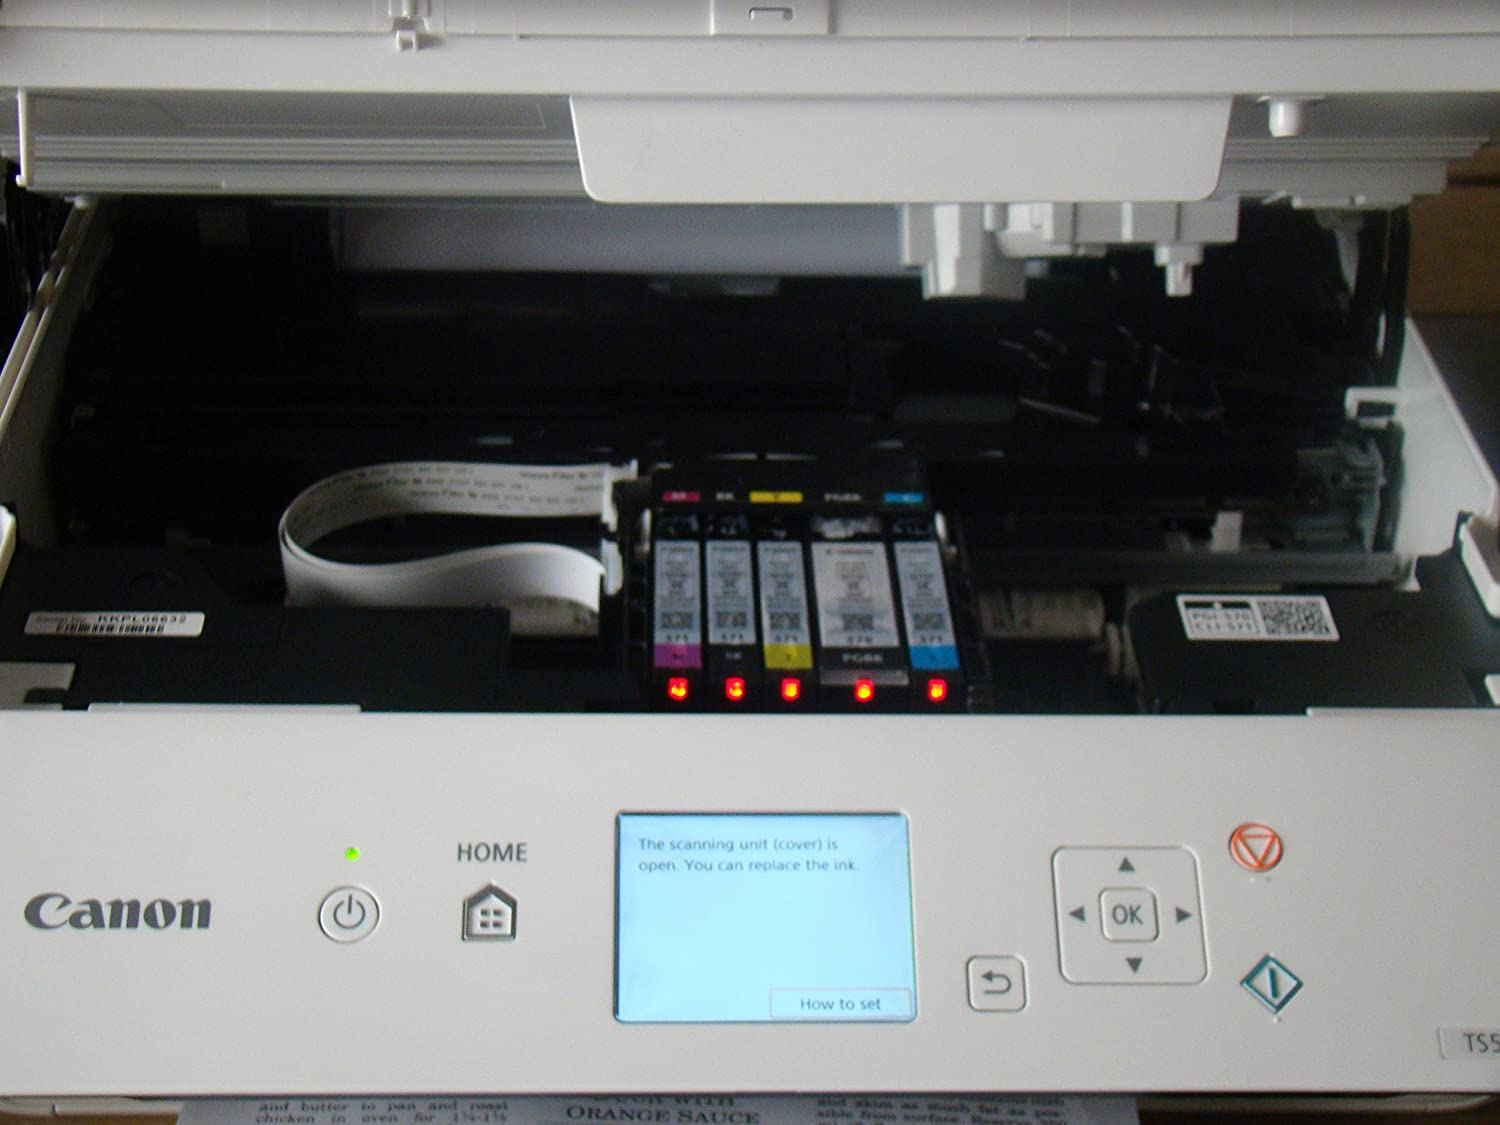 printing 216 x 297 mm - A4//Legal CANON 1367C028 PIXMA TS5051 Printers  Inkjet and Multifunction printer colour - up to 12.6 ipm USB 2.0 Wi-Fi - media original - 100 sheets ink-jet n